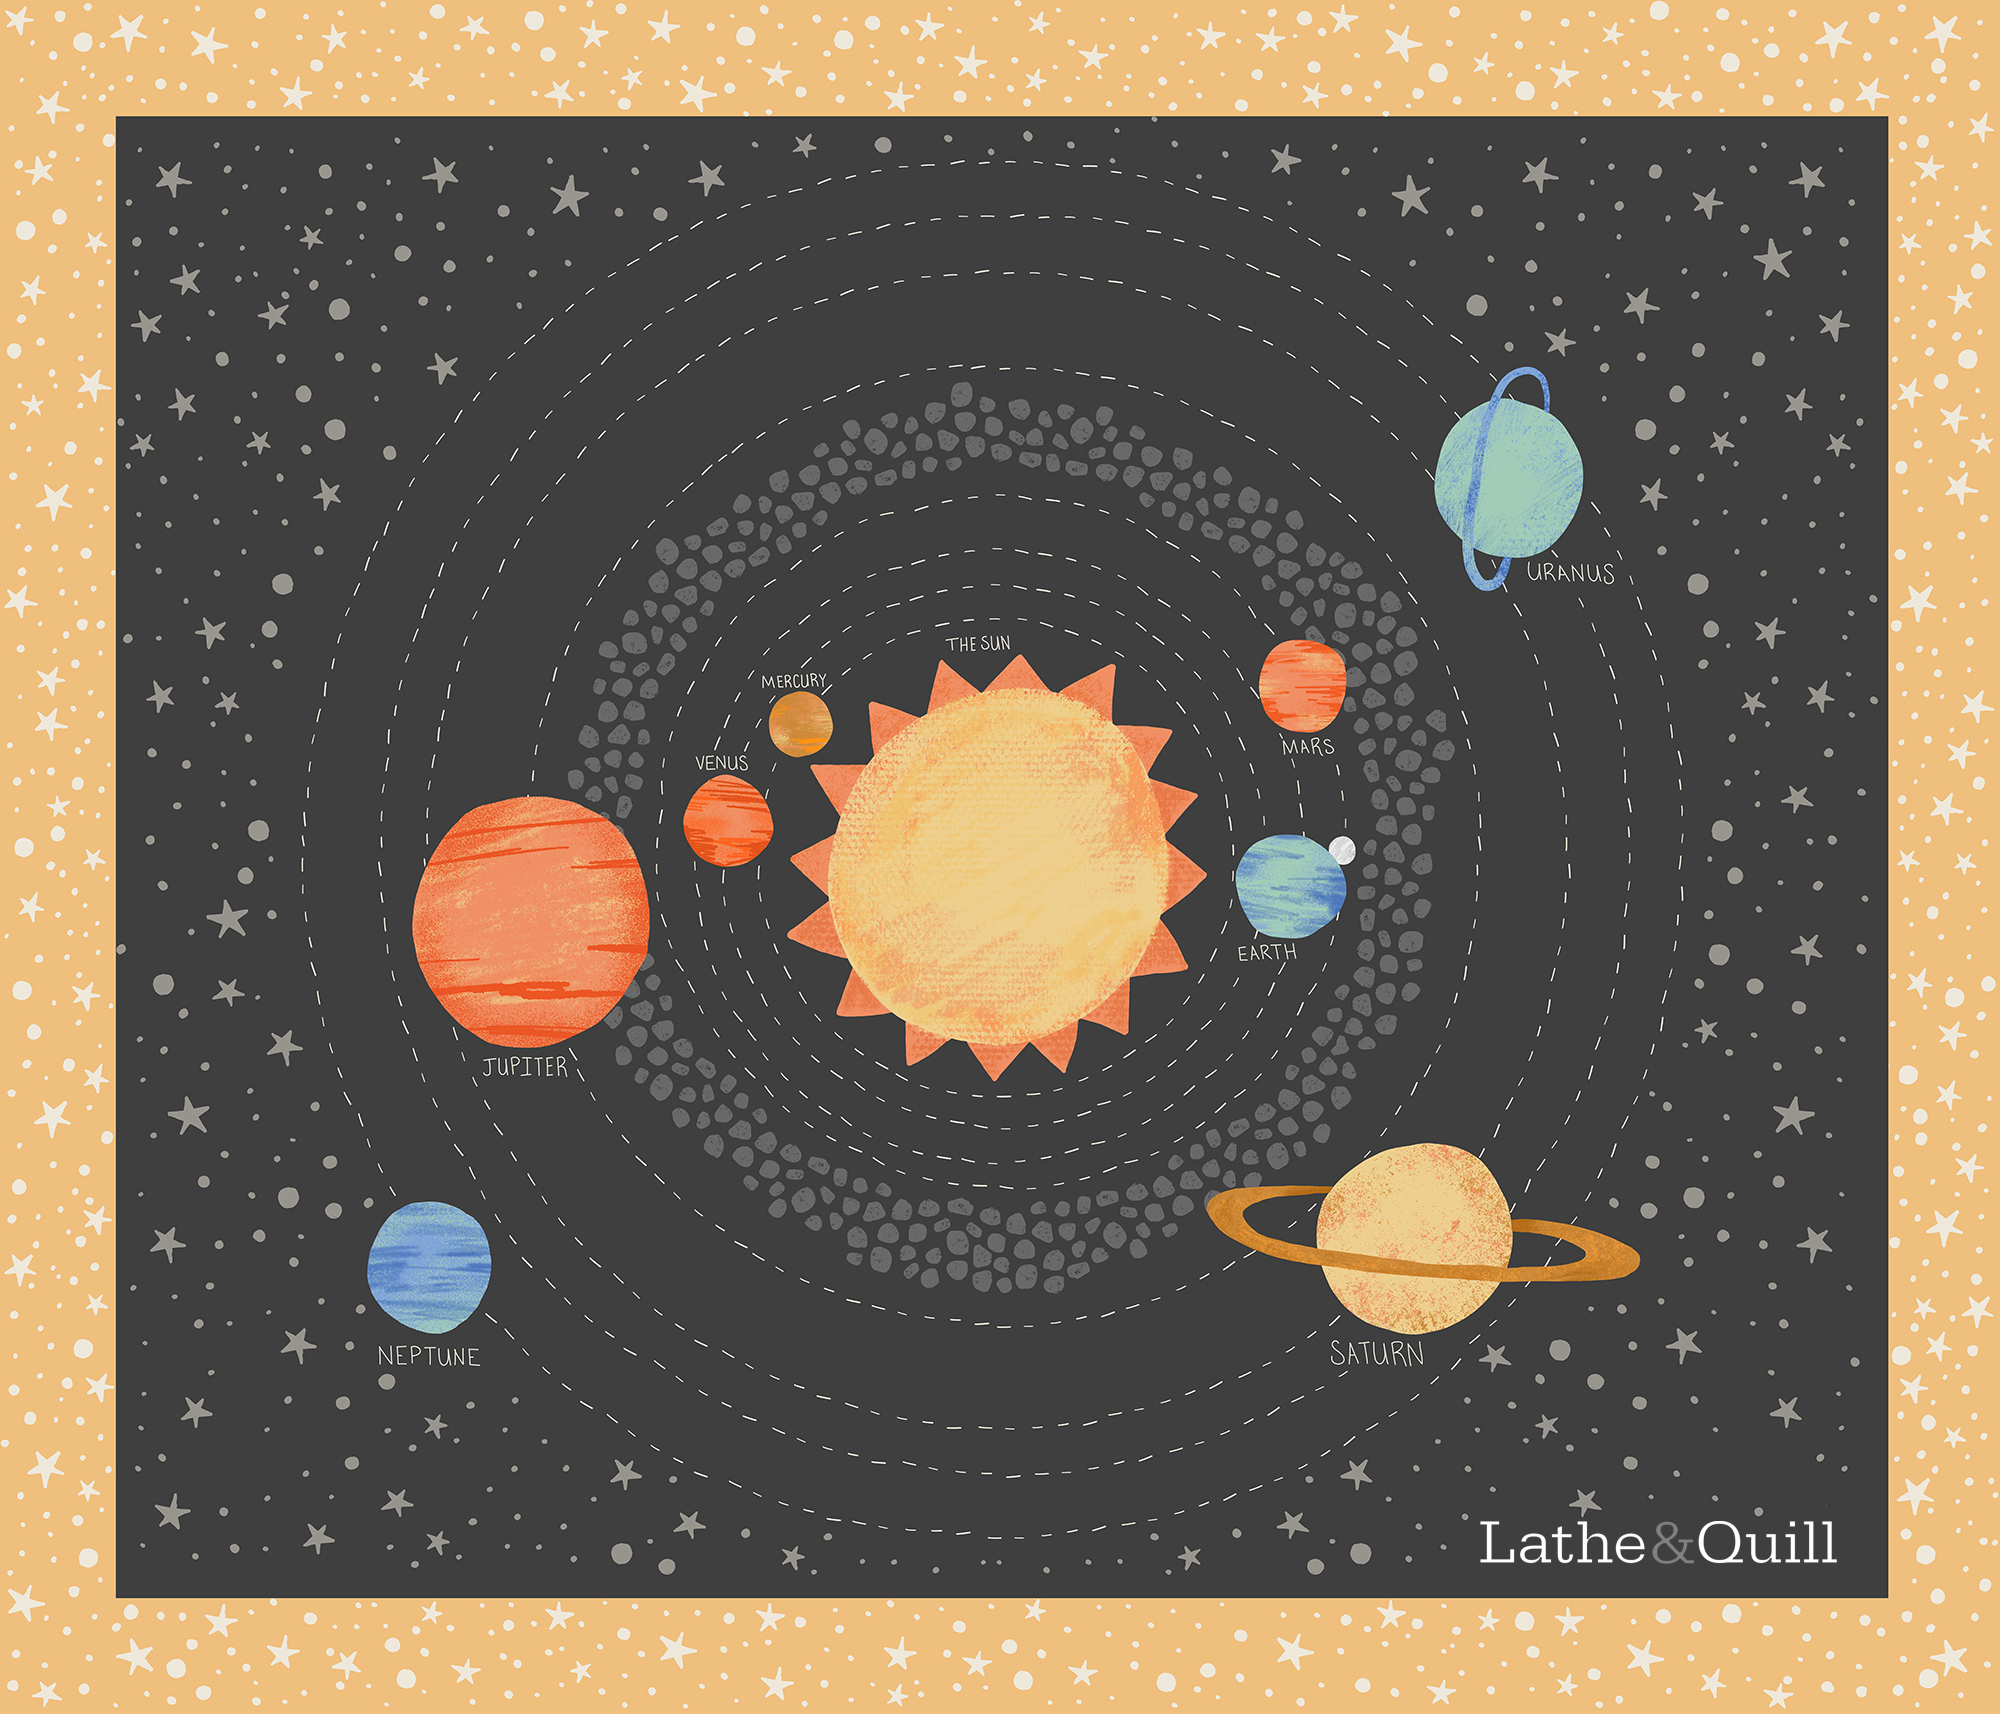 Playmat for kids who love space weather its for tummy time or space exploration this mat is so cute